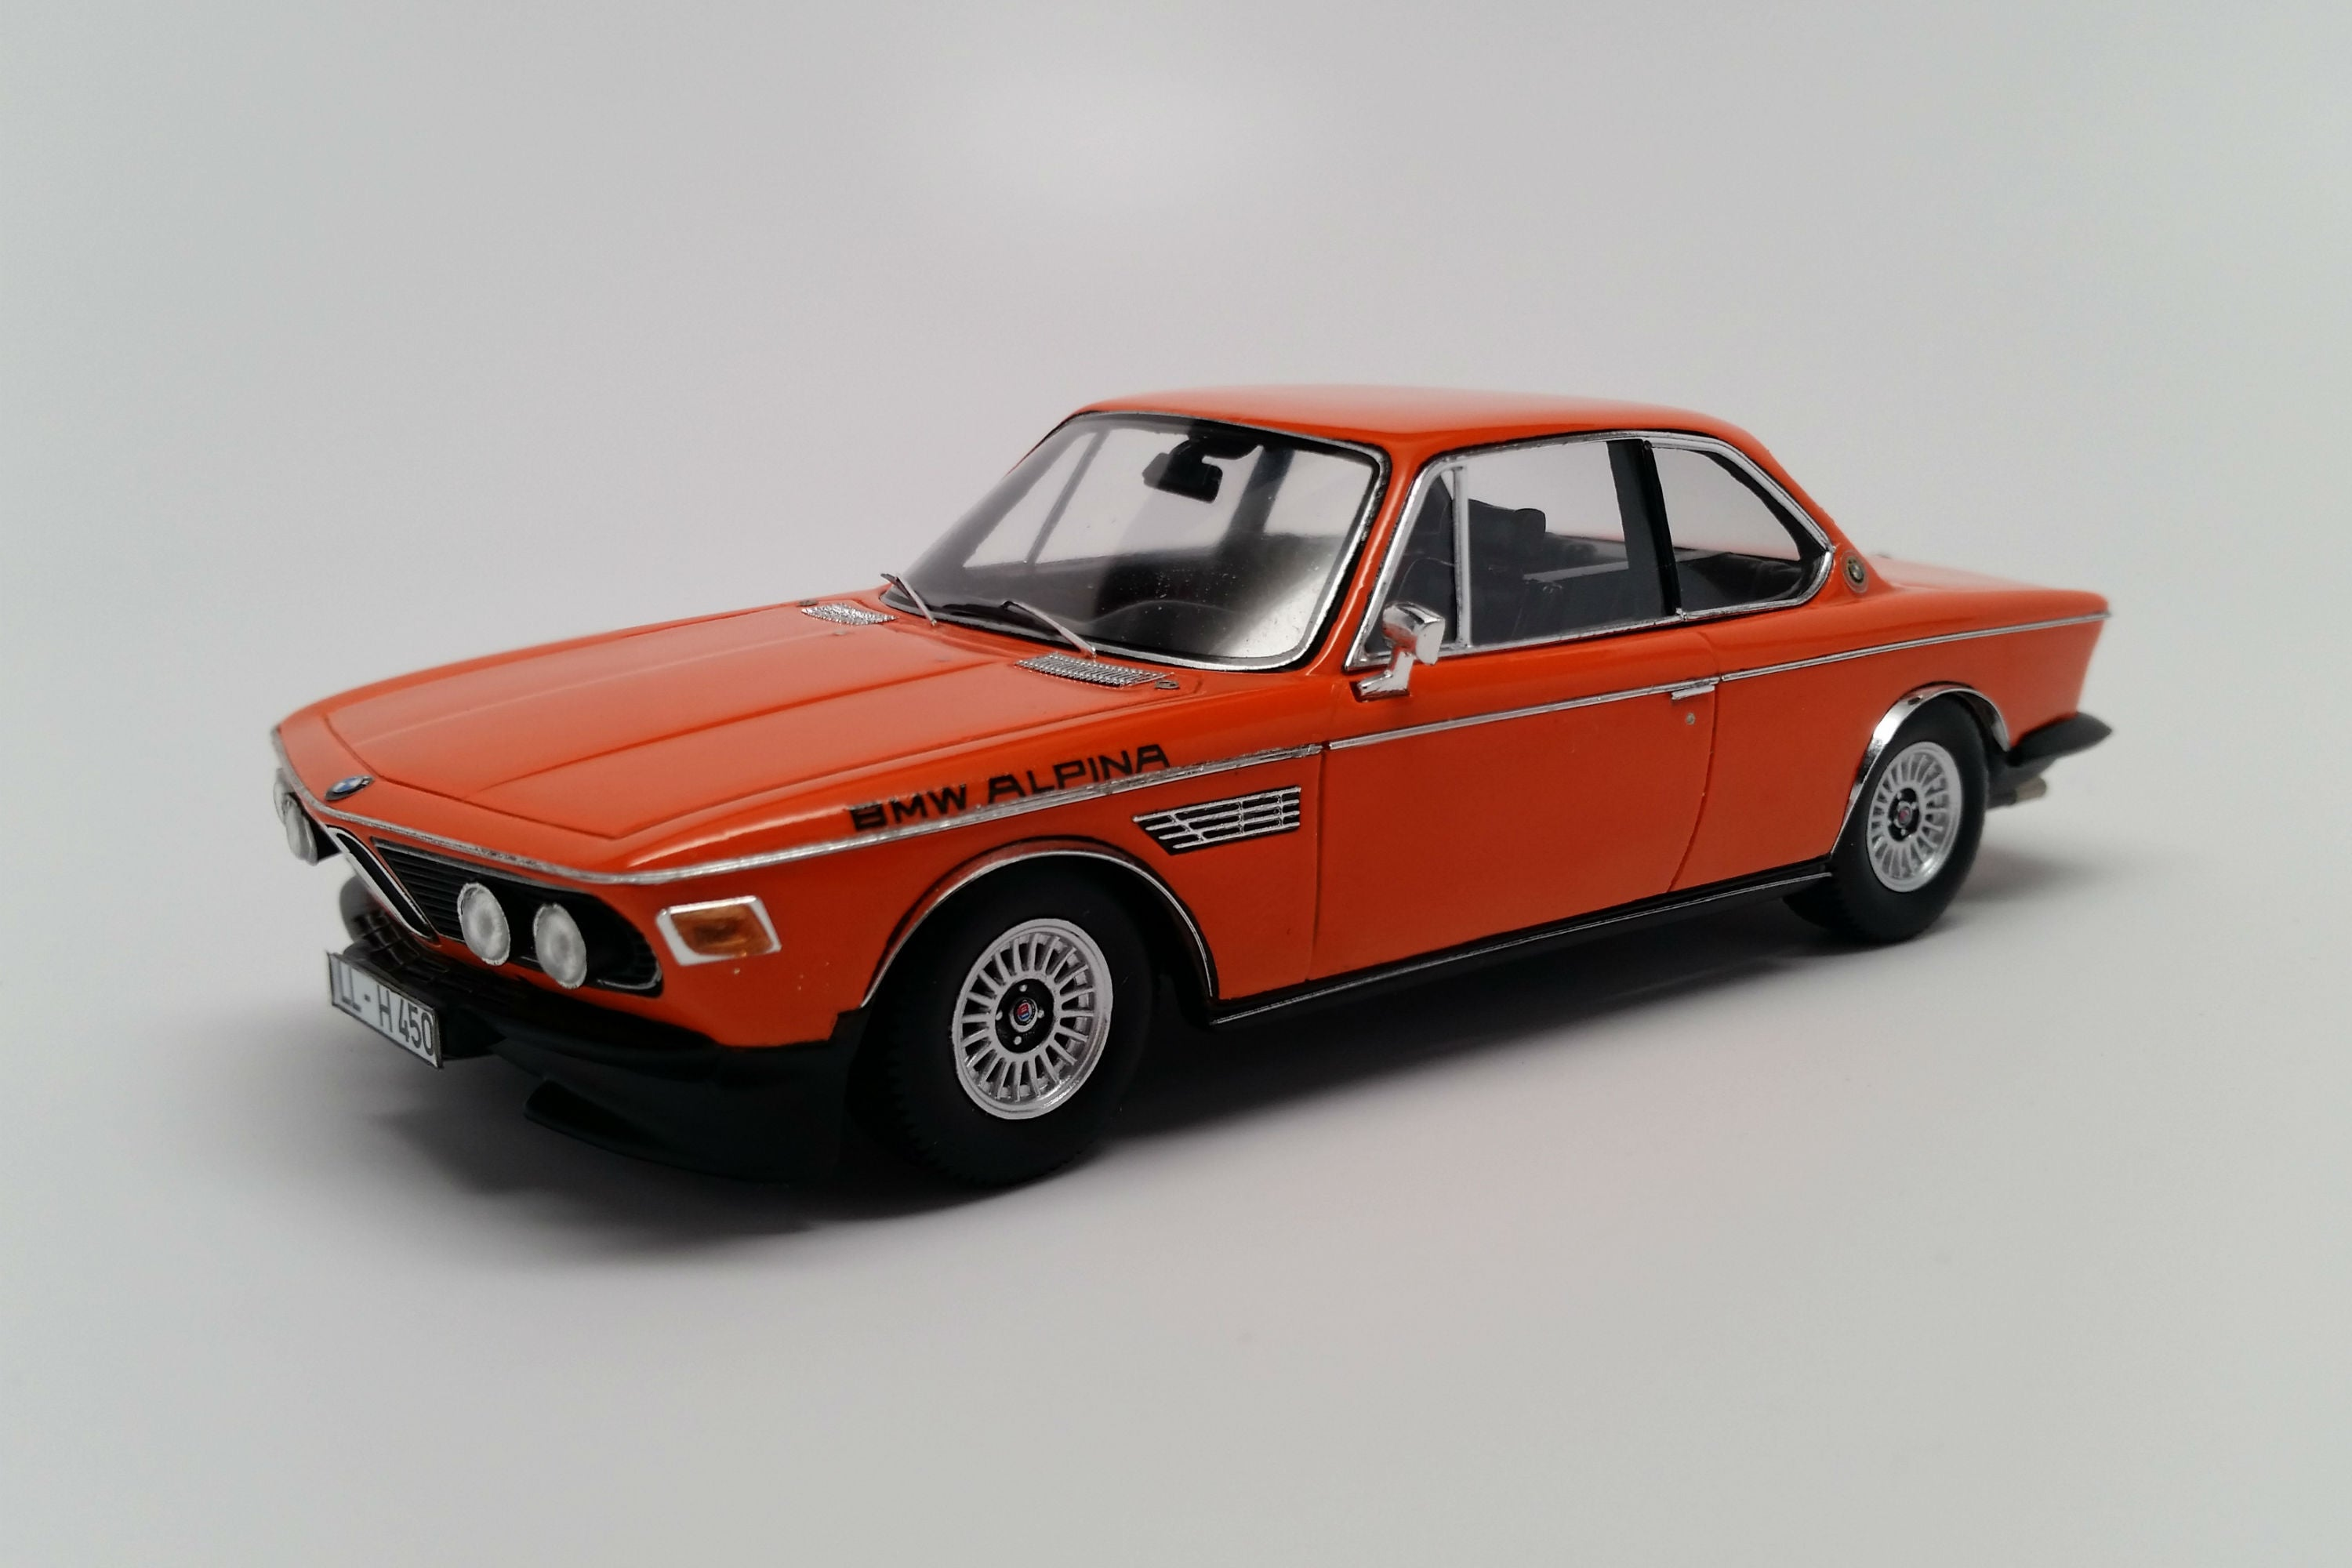 BMW Alpina B2S (E9, 1971) | 1:43 Scale Model Car by Spark | Front Quarter